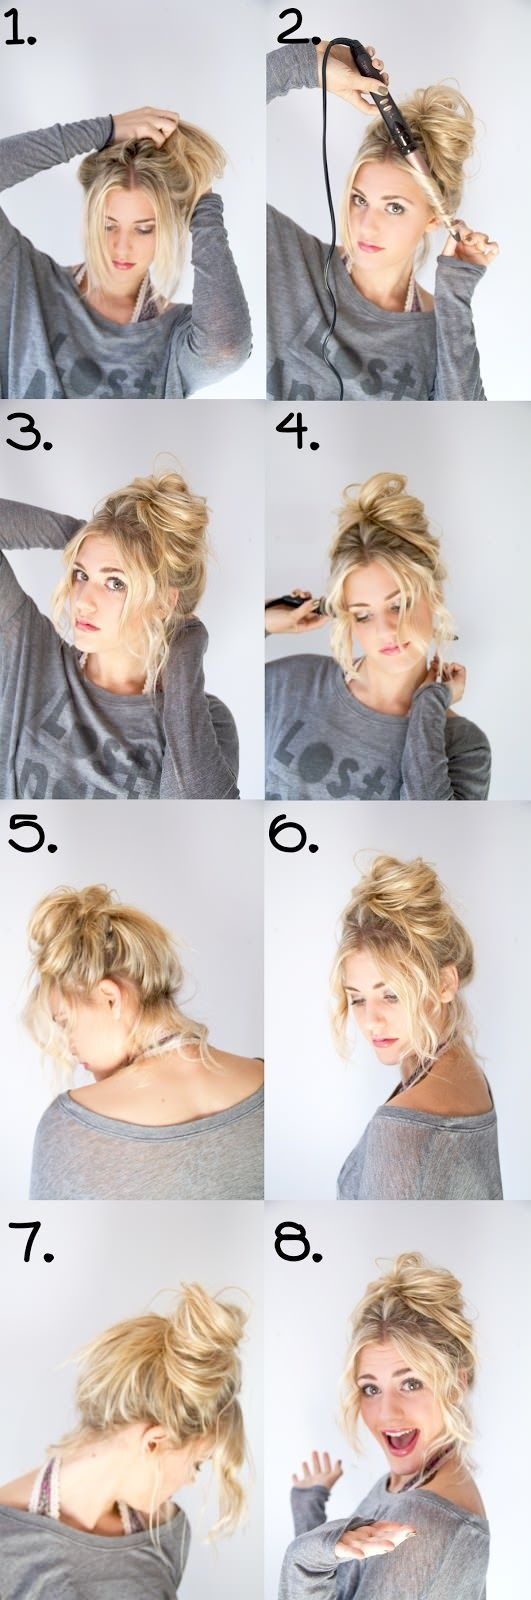 hair how tos | Fun Hair How-Tos